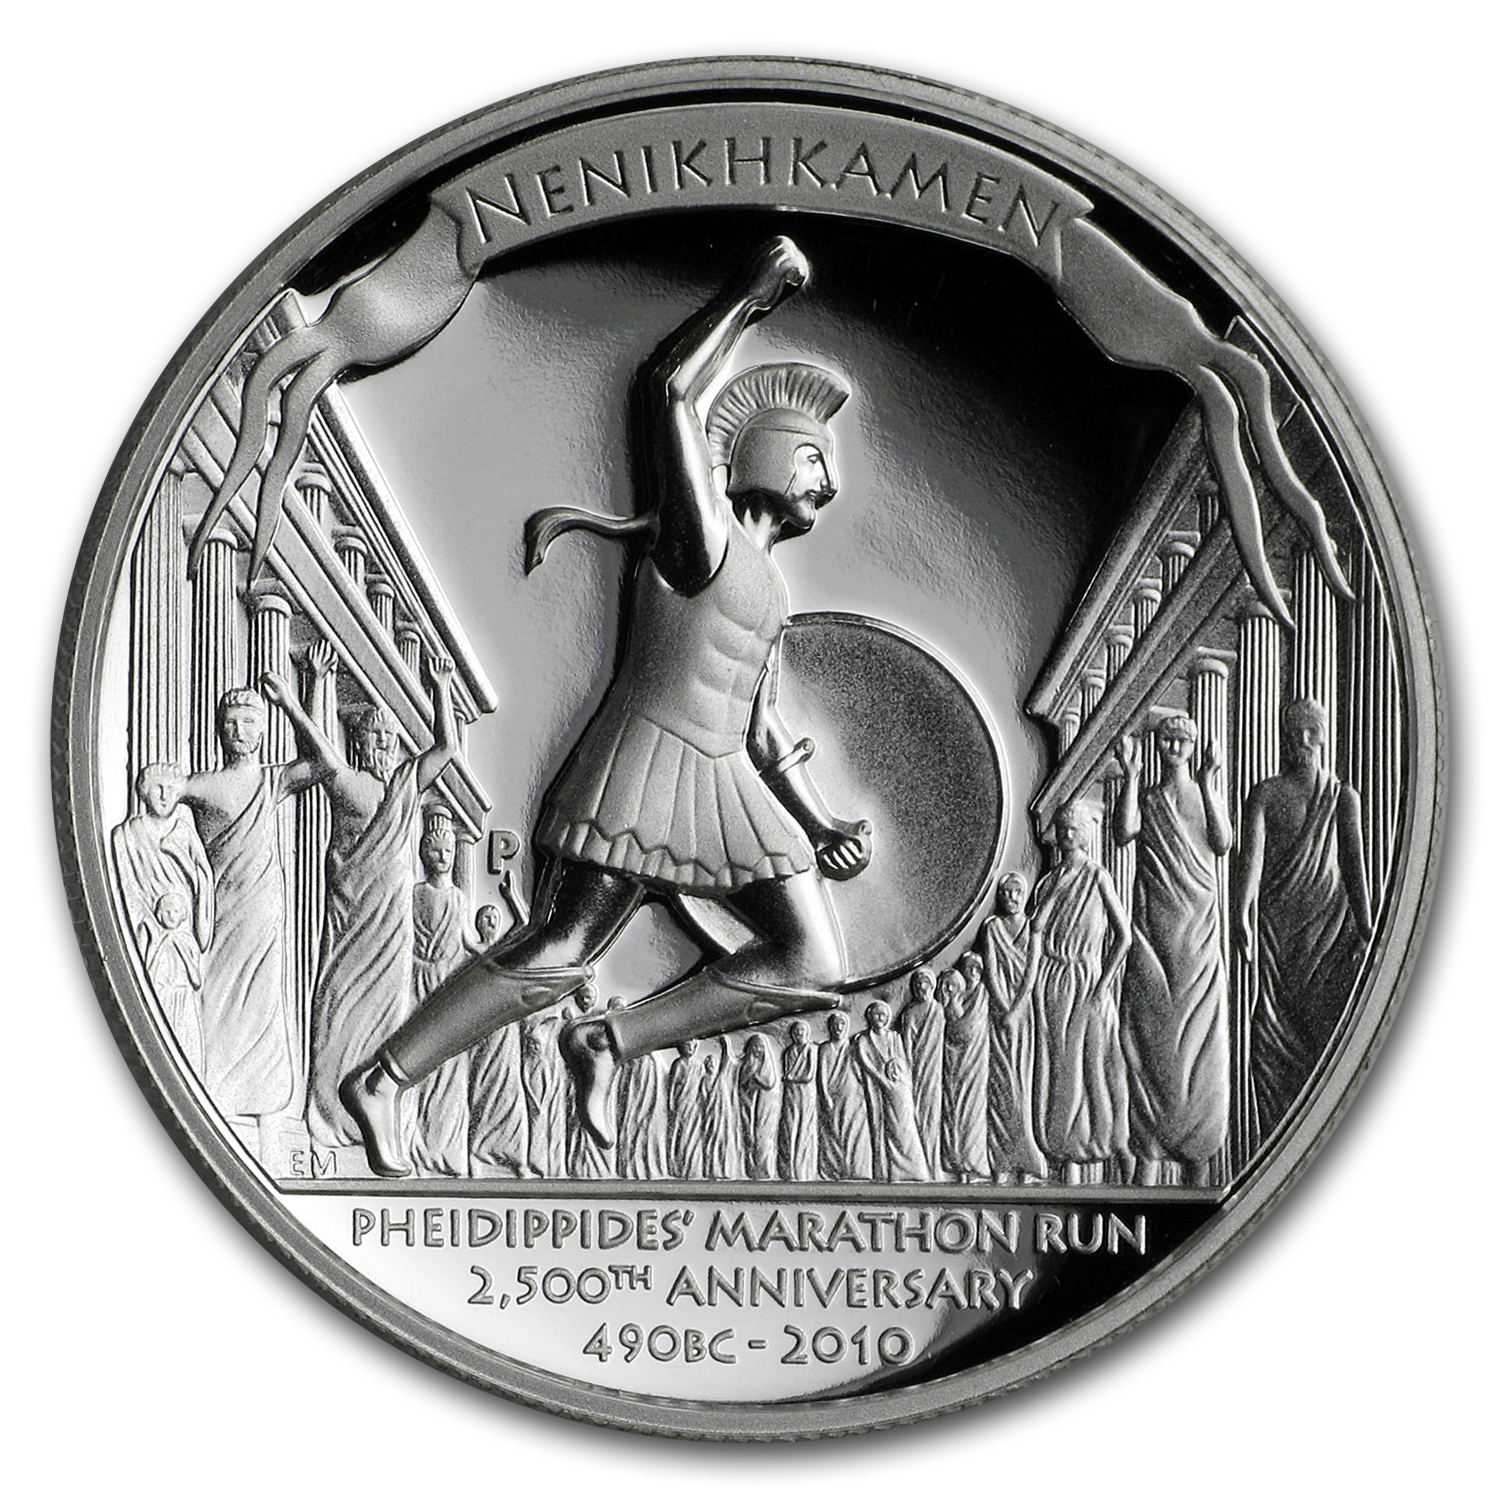 2010 Tuvalu 1 oz Silver Pheidippidis' Marathon Run Proof